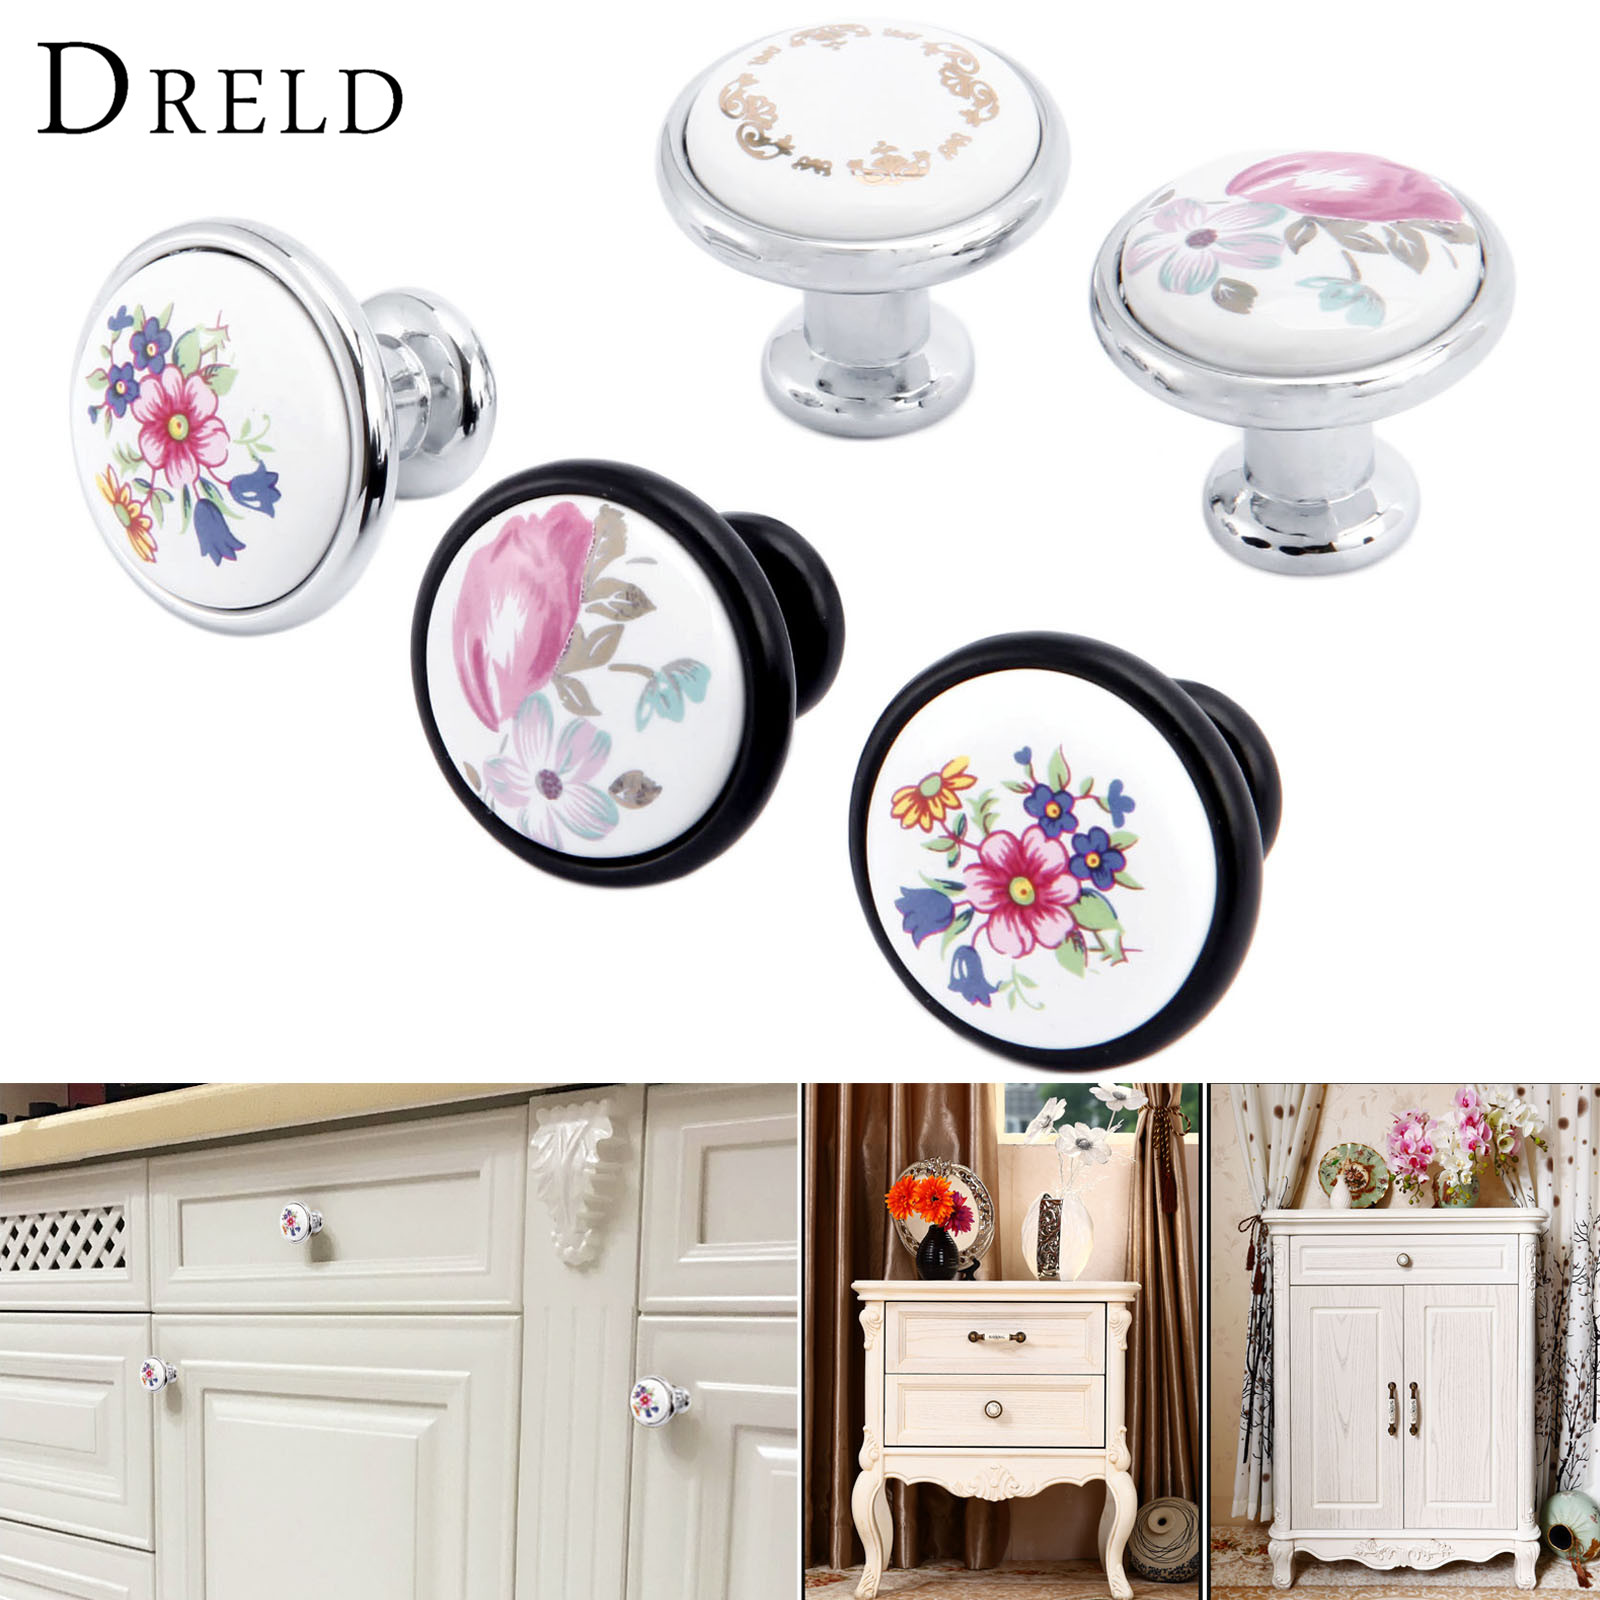 DRELD Furniture Handle Modern Cabinet Knobs and Handles Door Cupboard Drawer Pull Handle for Kitchen Bedroom Furniture Hardware